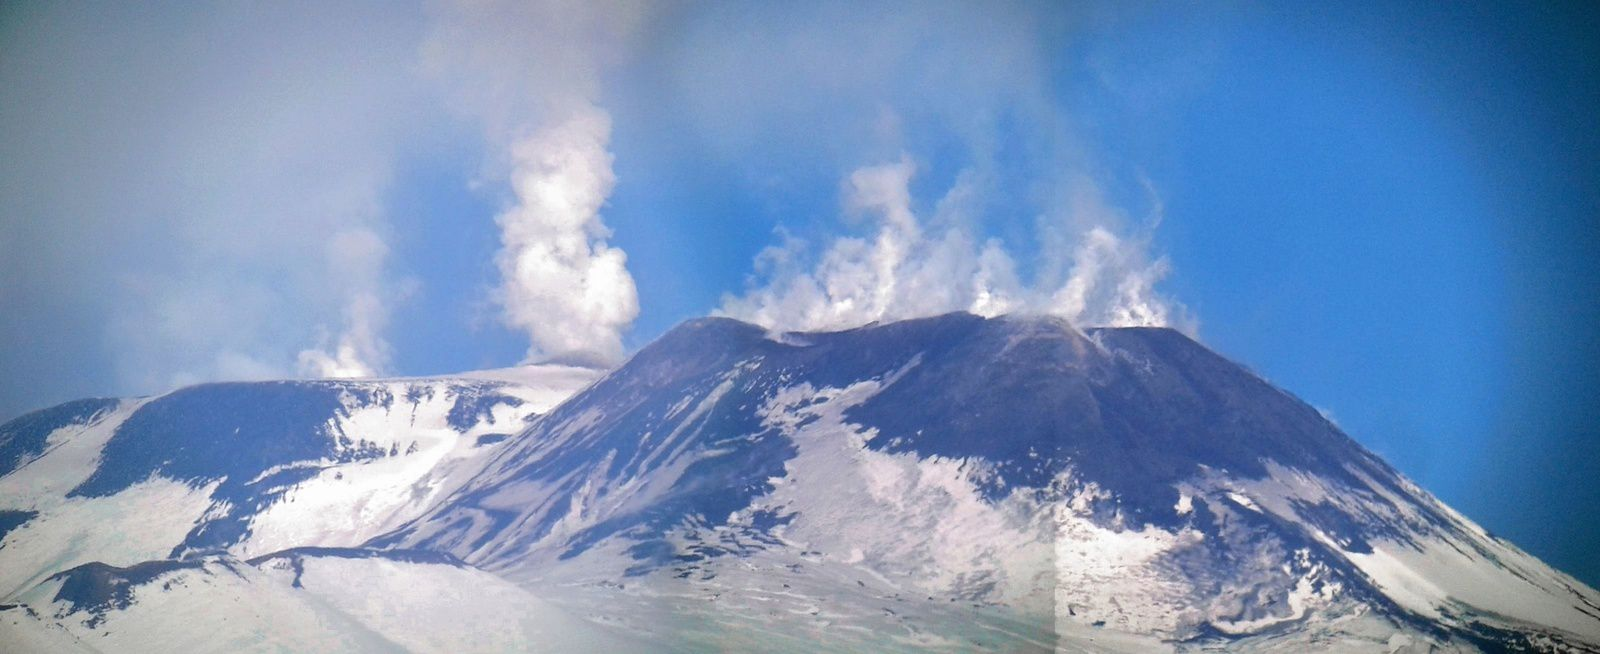 Etna - Vapor emissions of the summit craters - photo 01.01.2017 / Boris Behncke